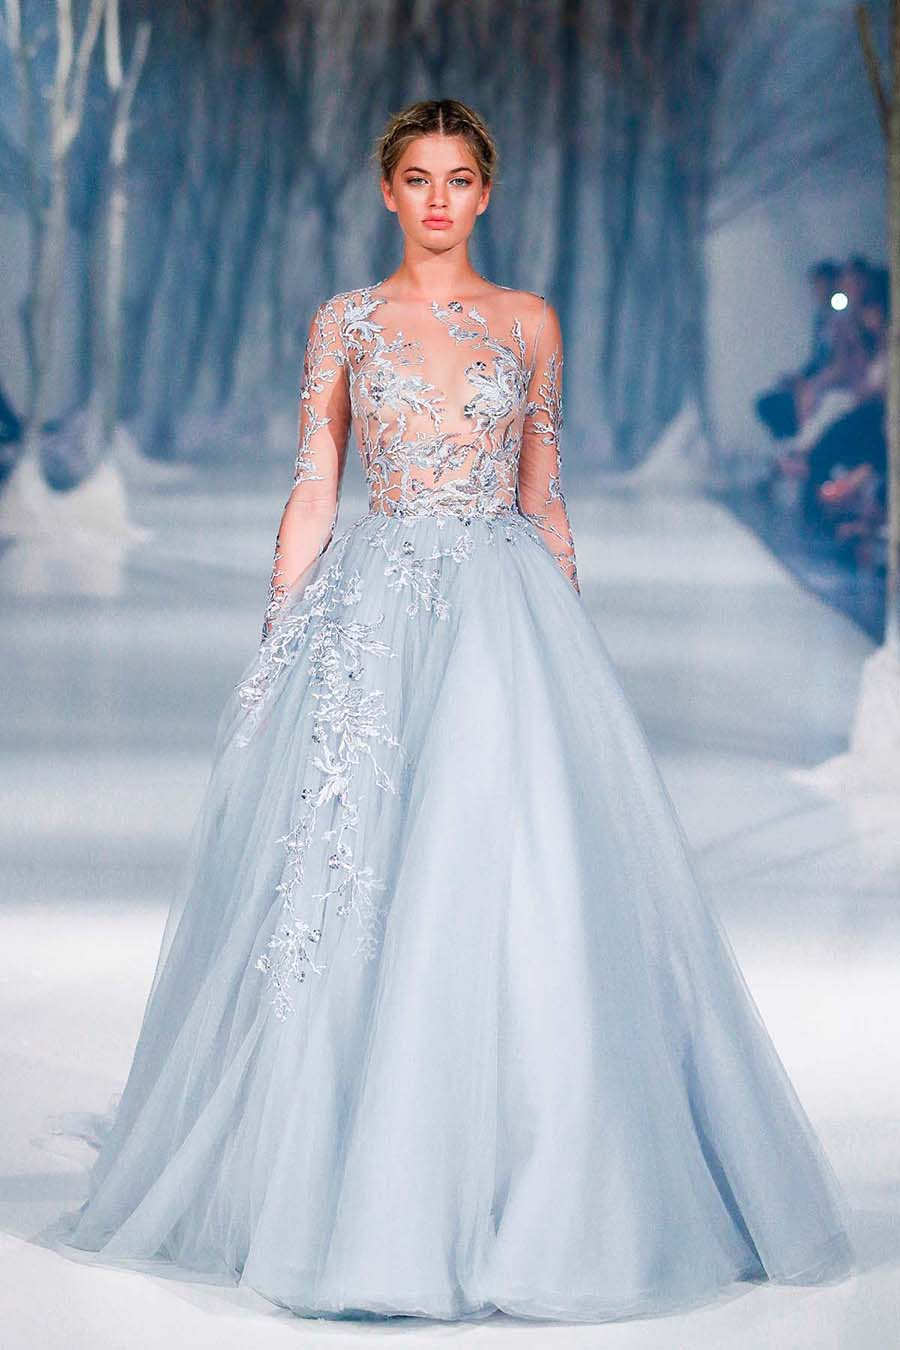 13-The-Wedding-Scoop-Proposal-Bridal-Paolo-Sebastian